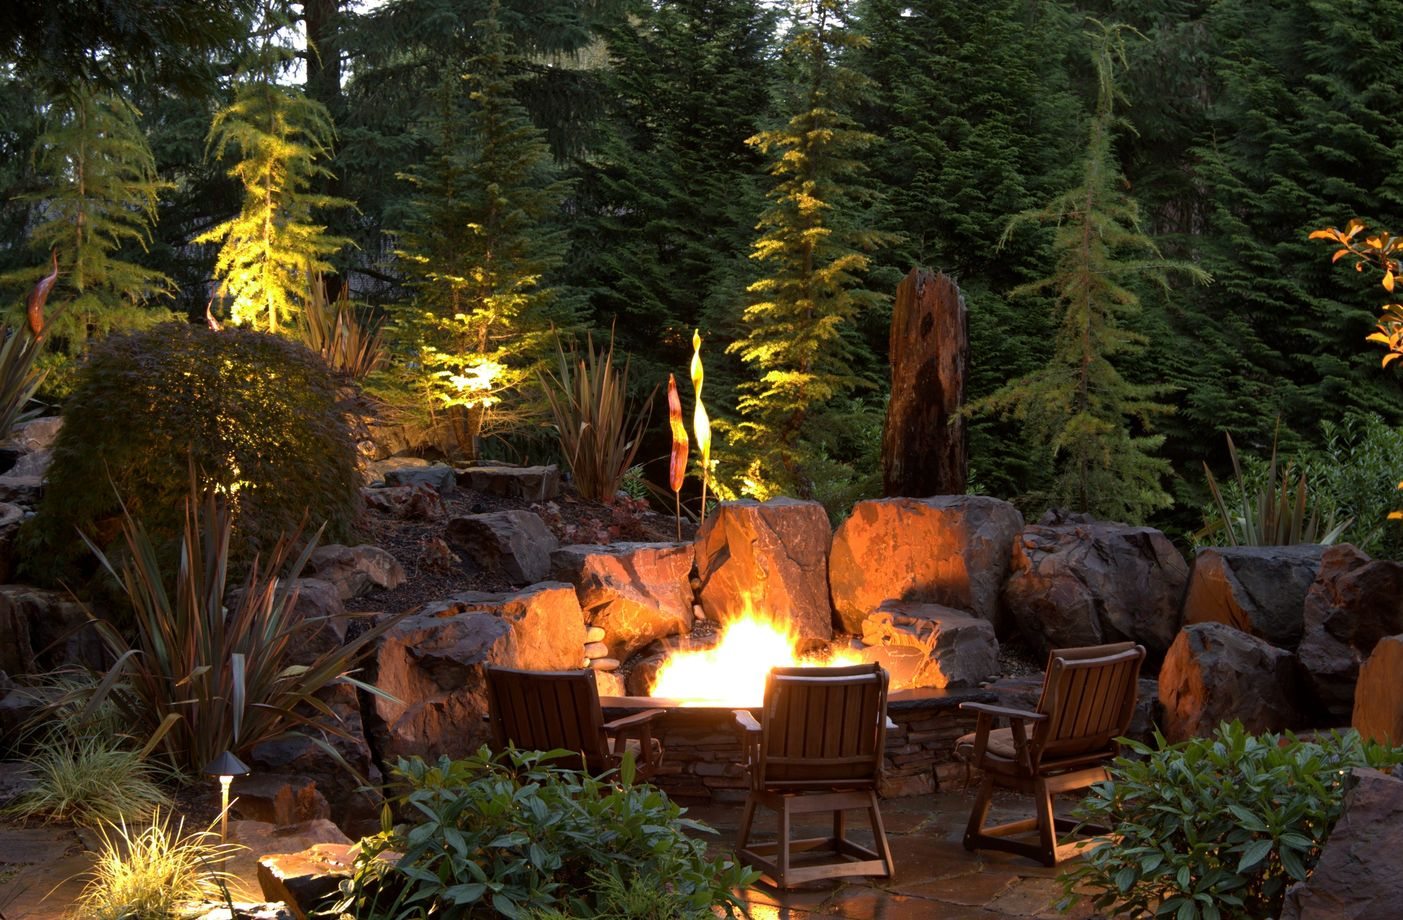 15 Fire Pit Ideas To Keep You Cozy Year Round on Garden Ideas With Fire Pit id=35461